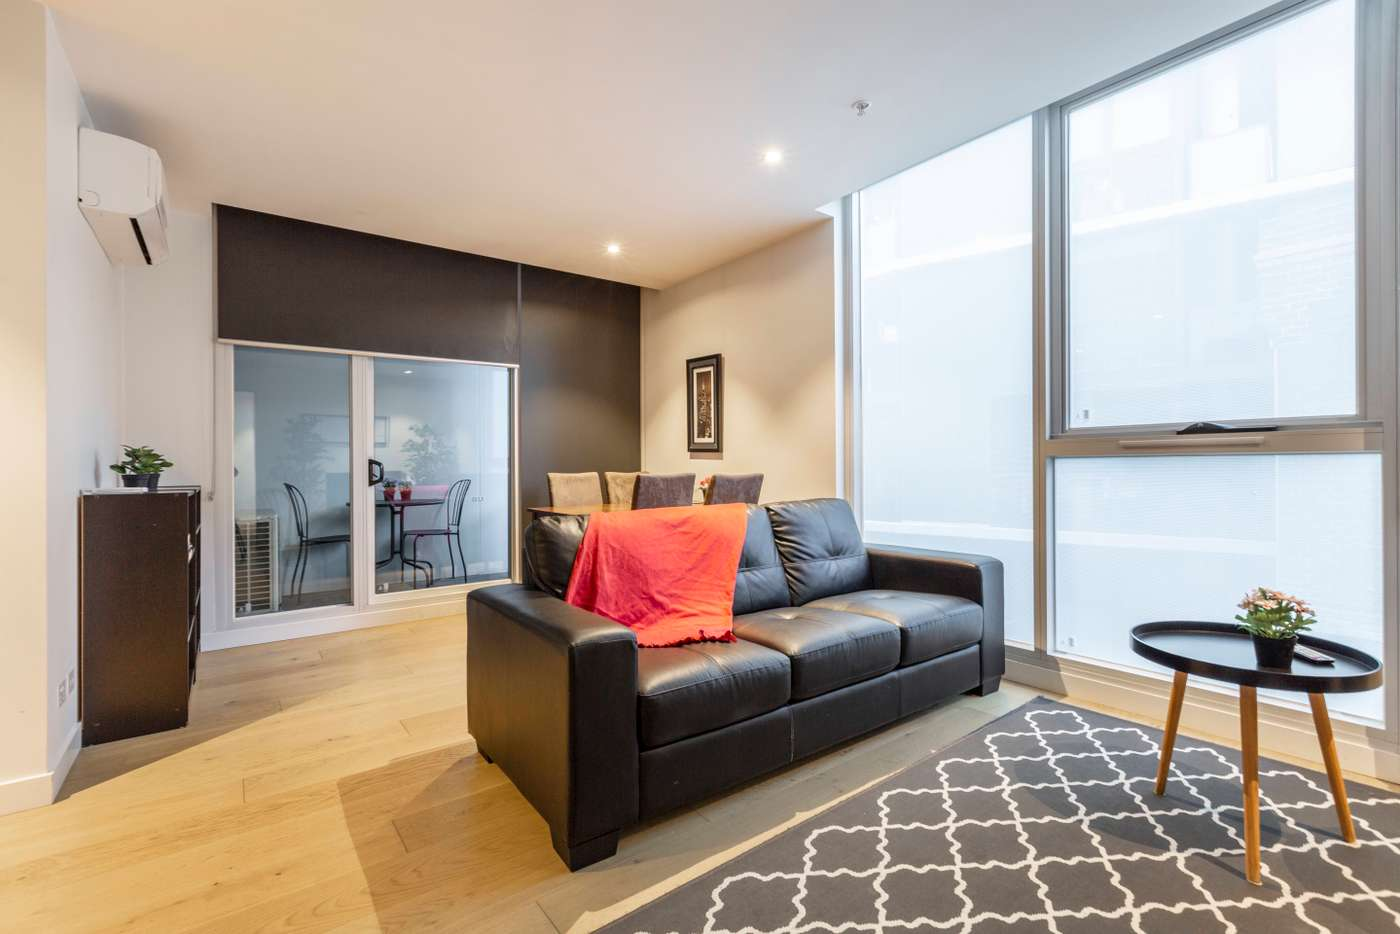 Main view of Homely apartment listing, 3 Brewery Lane, Collingwood VIC 3066